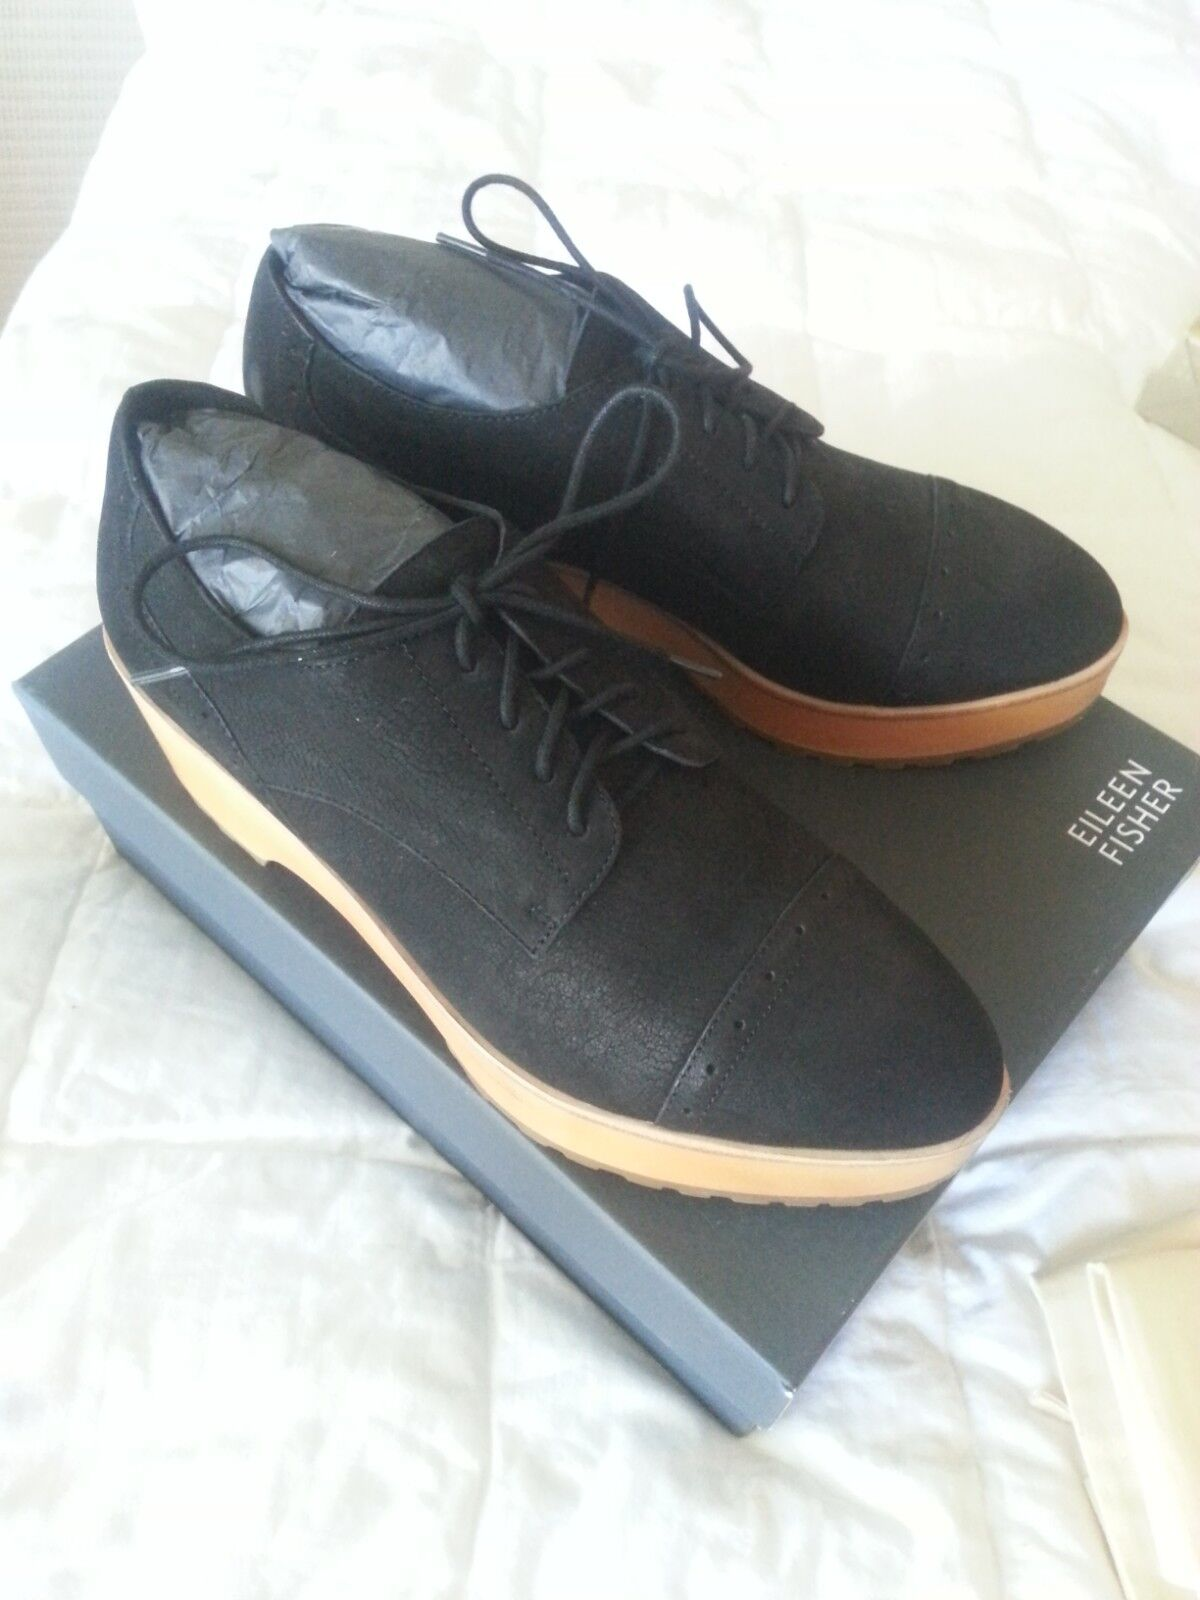 New Eileen Fisher wedge oxford black nubuck shoes size 8 retail  245